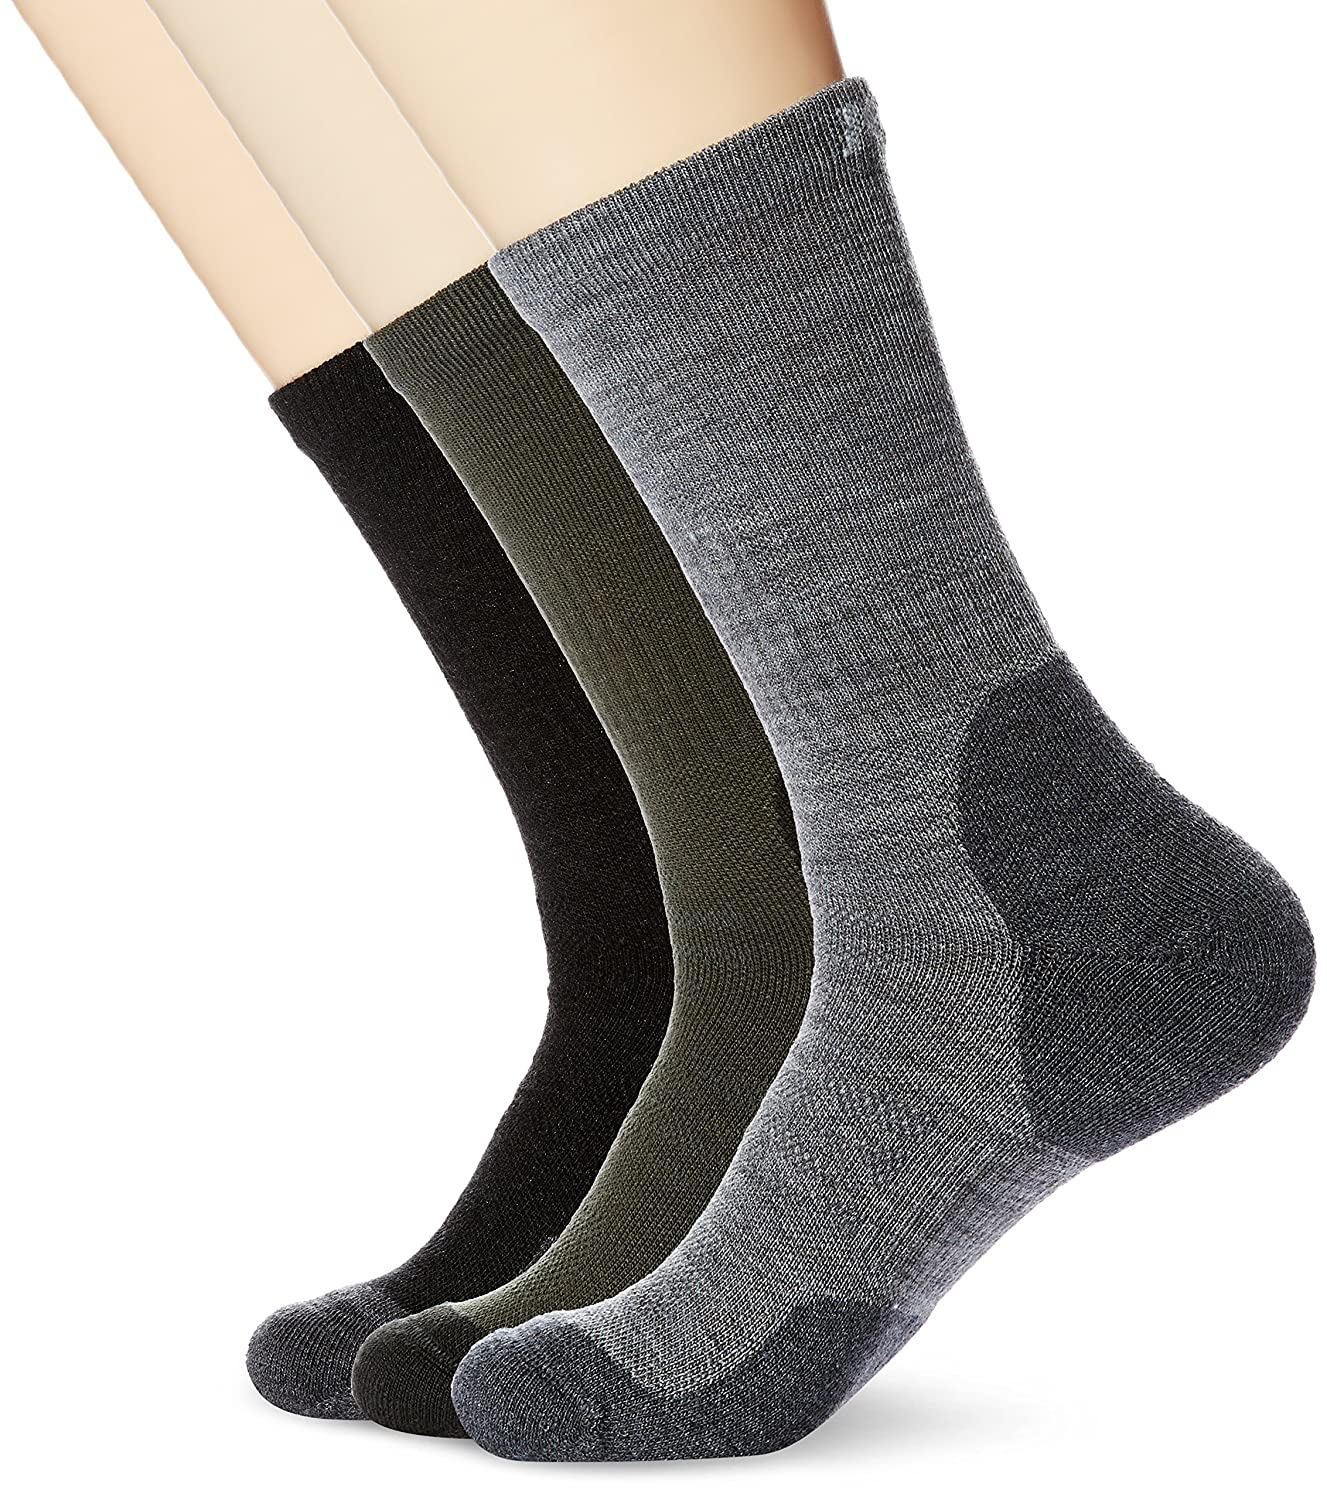 Casual Trekking Large Multicolored3 FFD4A11LO1 Kold Feet Mens Performance 3-Pair Comfort Merino Wool Crew Hiking Socks Cushioned Ankle Athletic Socks for Sports